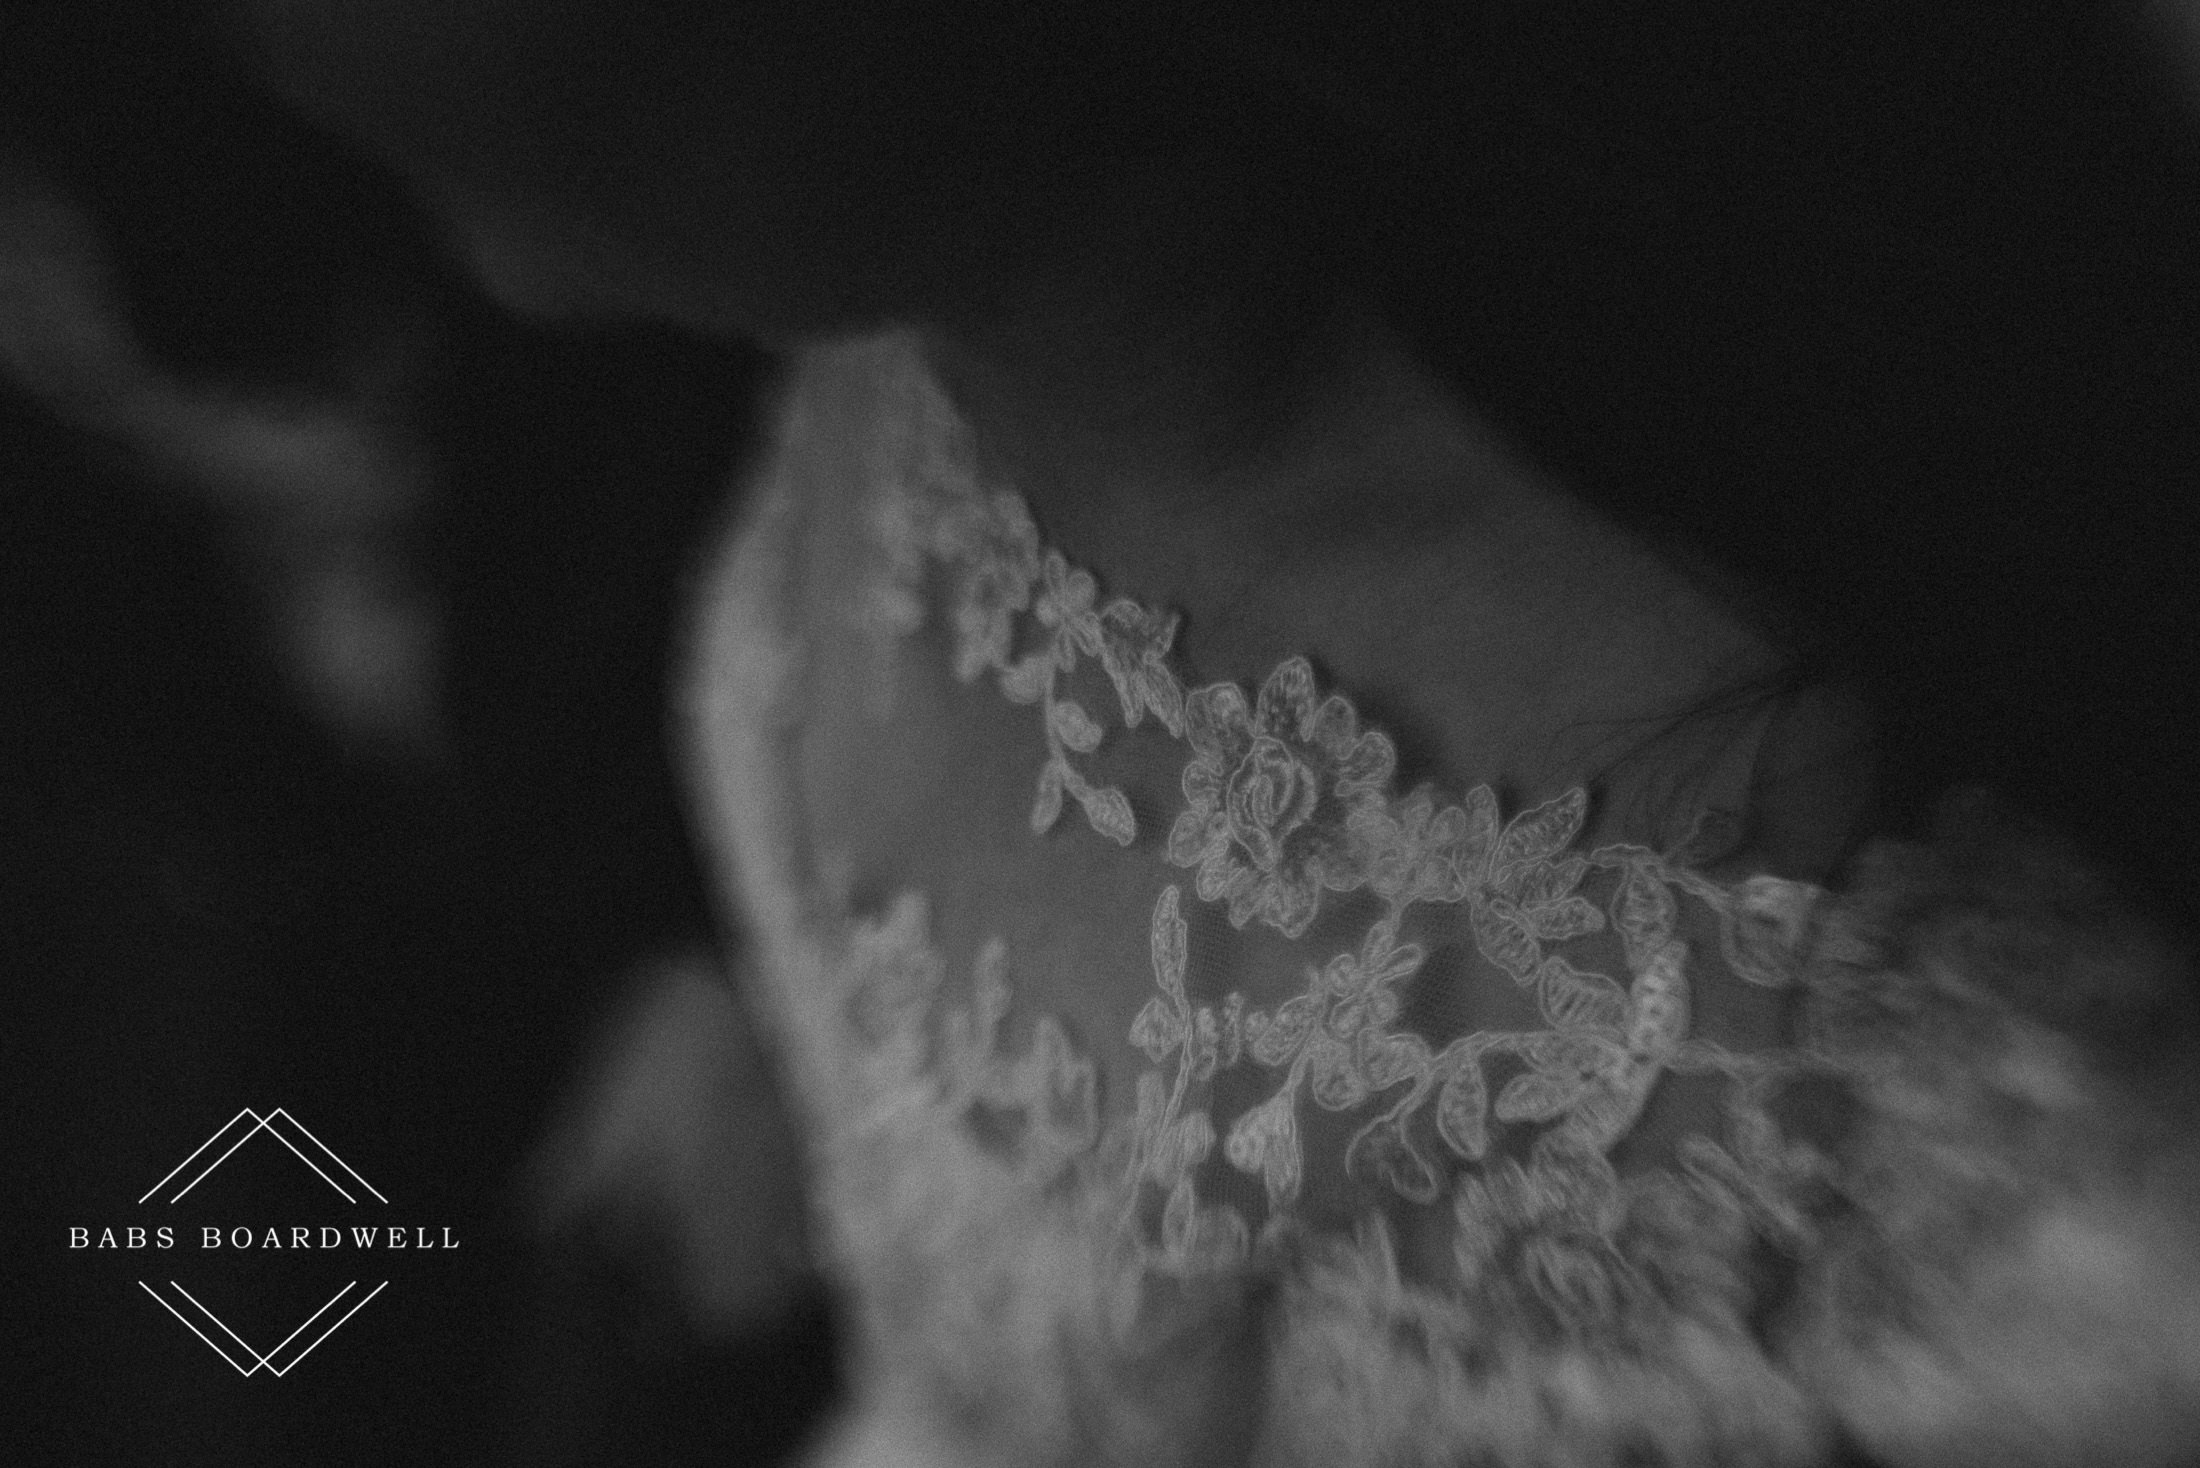 close-up of black and white image of details on bride's dress